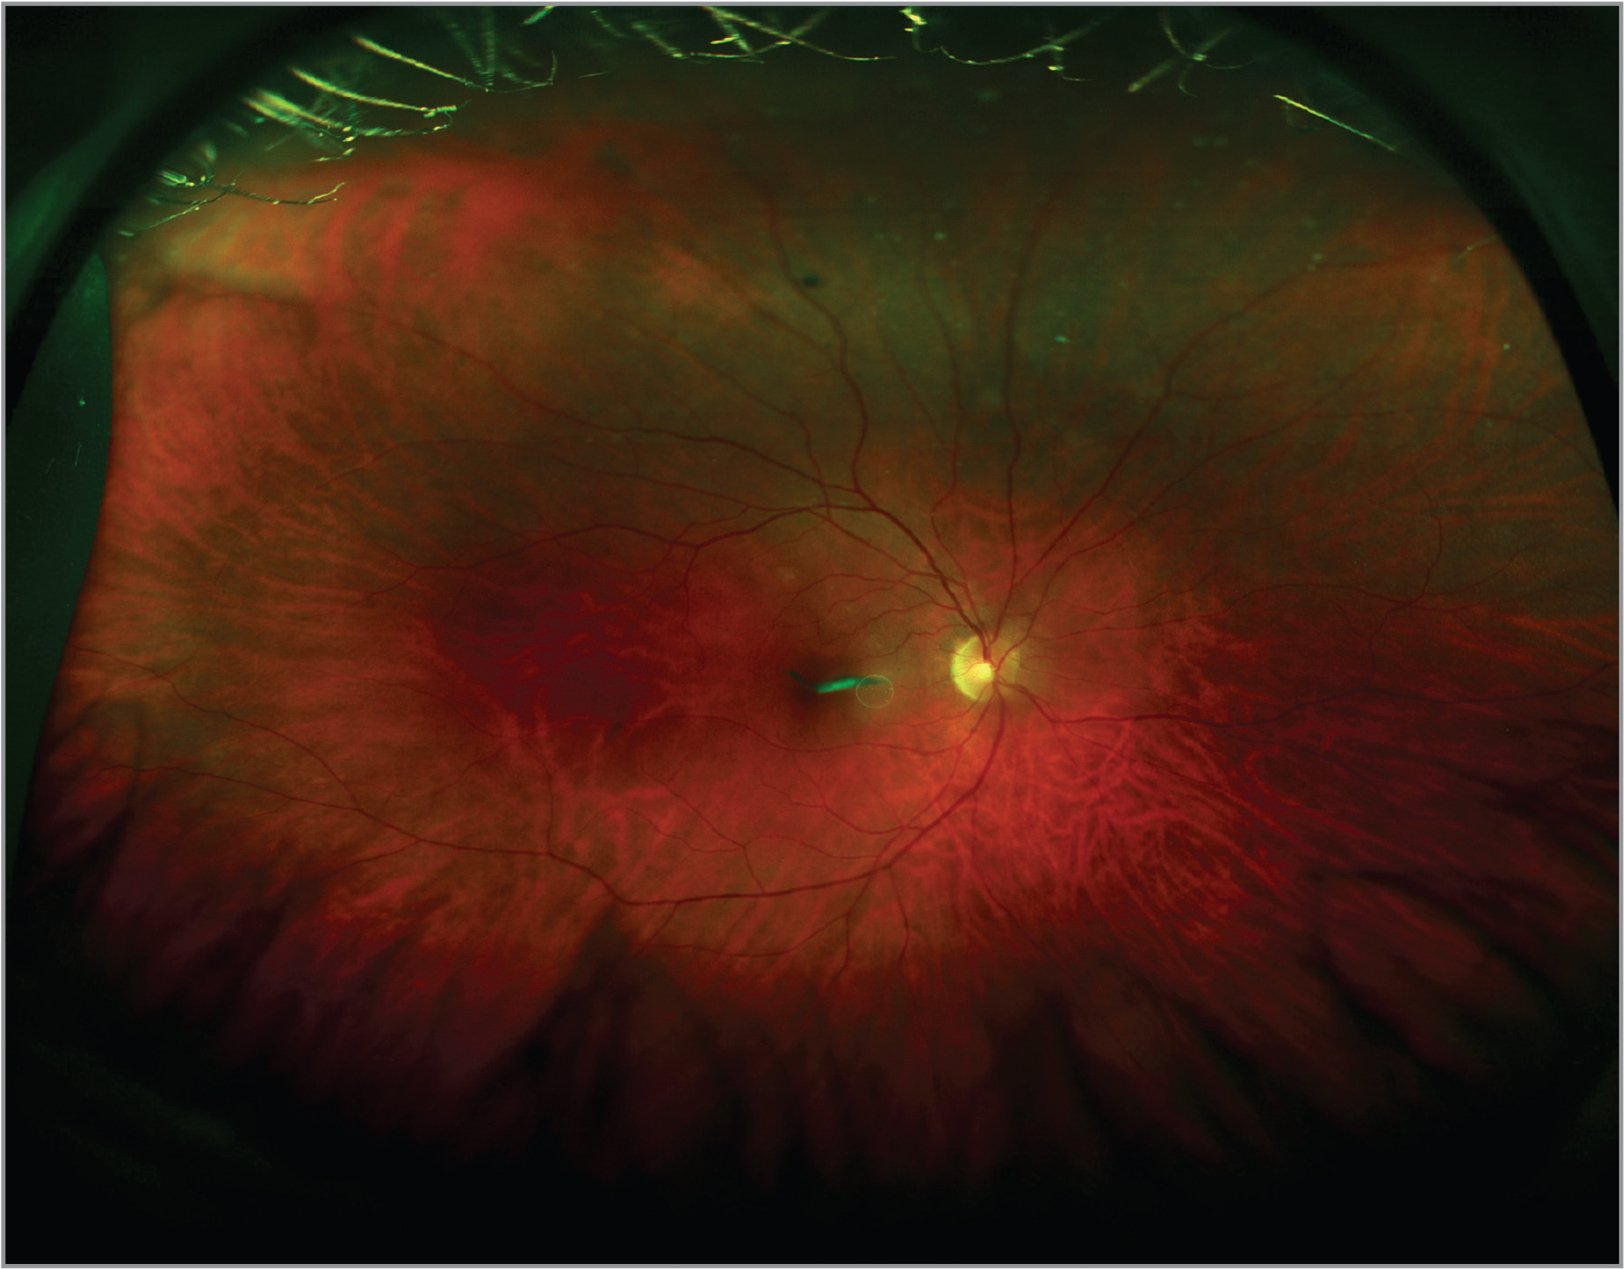 The appearance of a symptomatic Weiss ring in front of the fovea. The patient noted difficulty reading when the floater drifted within his central visual axis.